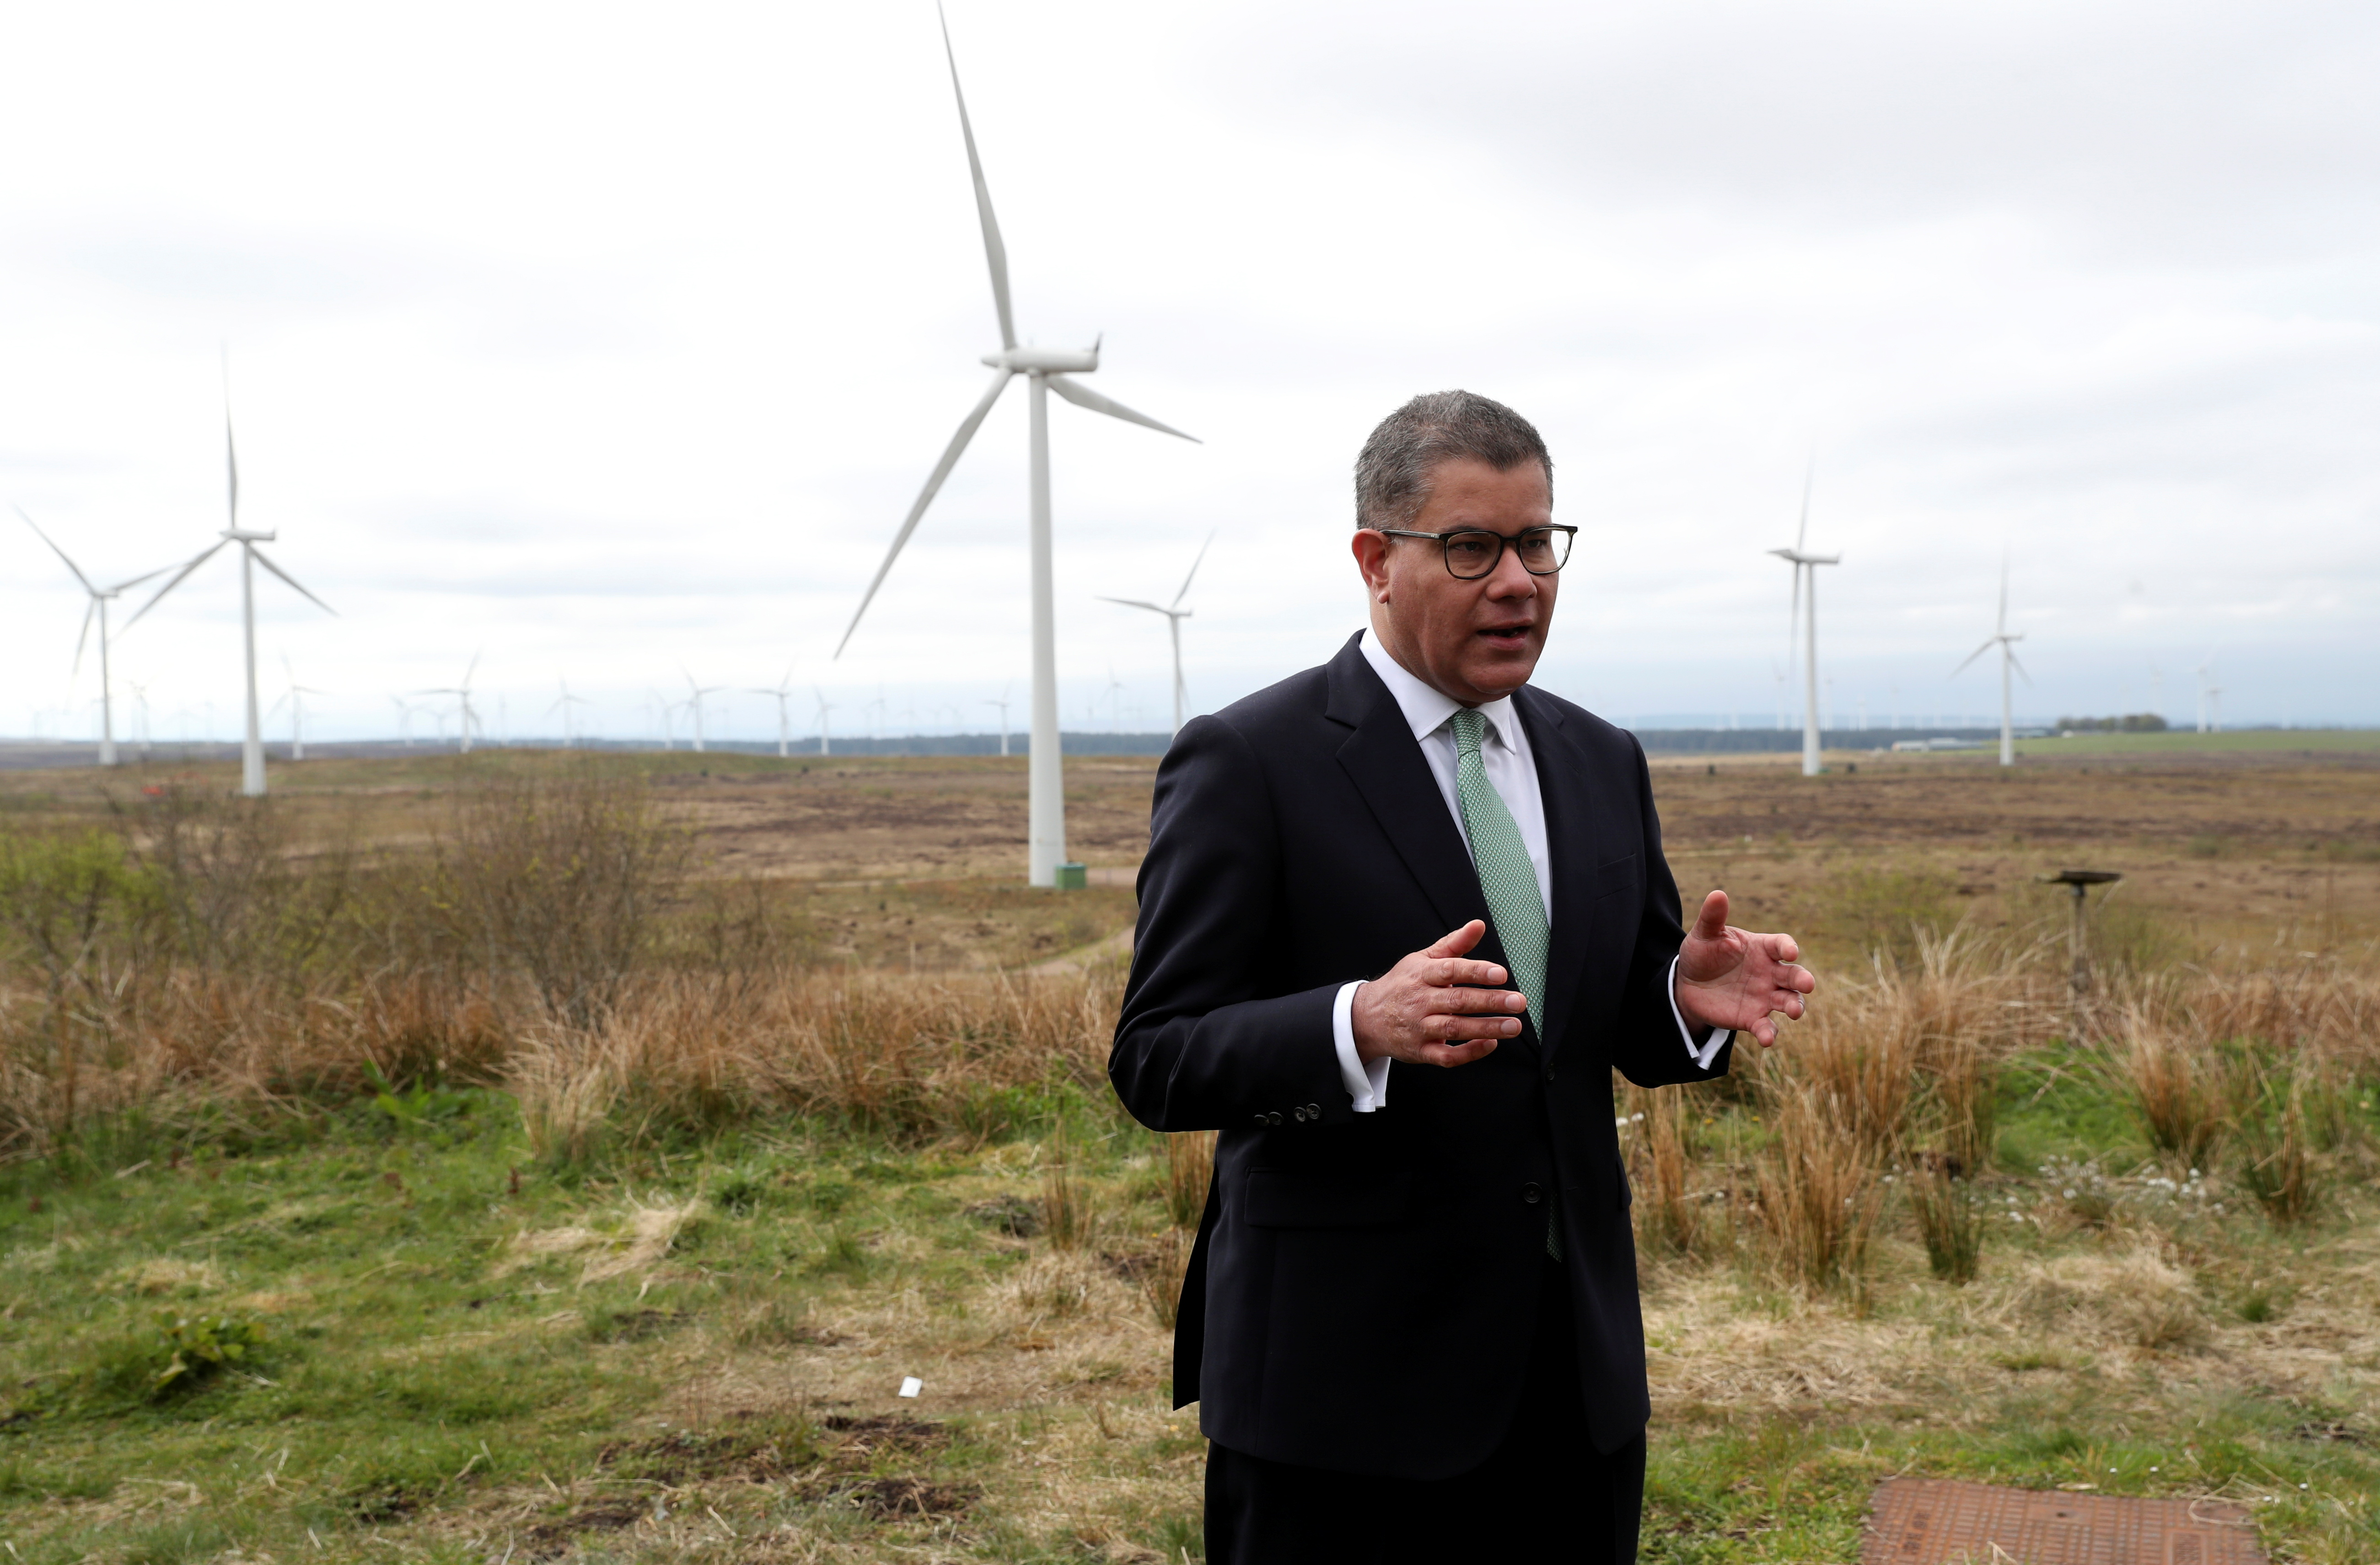 COP26 President Alok Sharma rehearses a speech at Whitelee Windfarm, with six months to go until the U.N. Climate Change Conference, just outside Glasgow, Scotland, Britain, May 14, 2021. REUTERS/Russell Cheyne/Pool